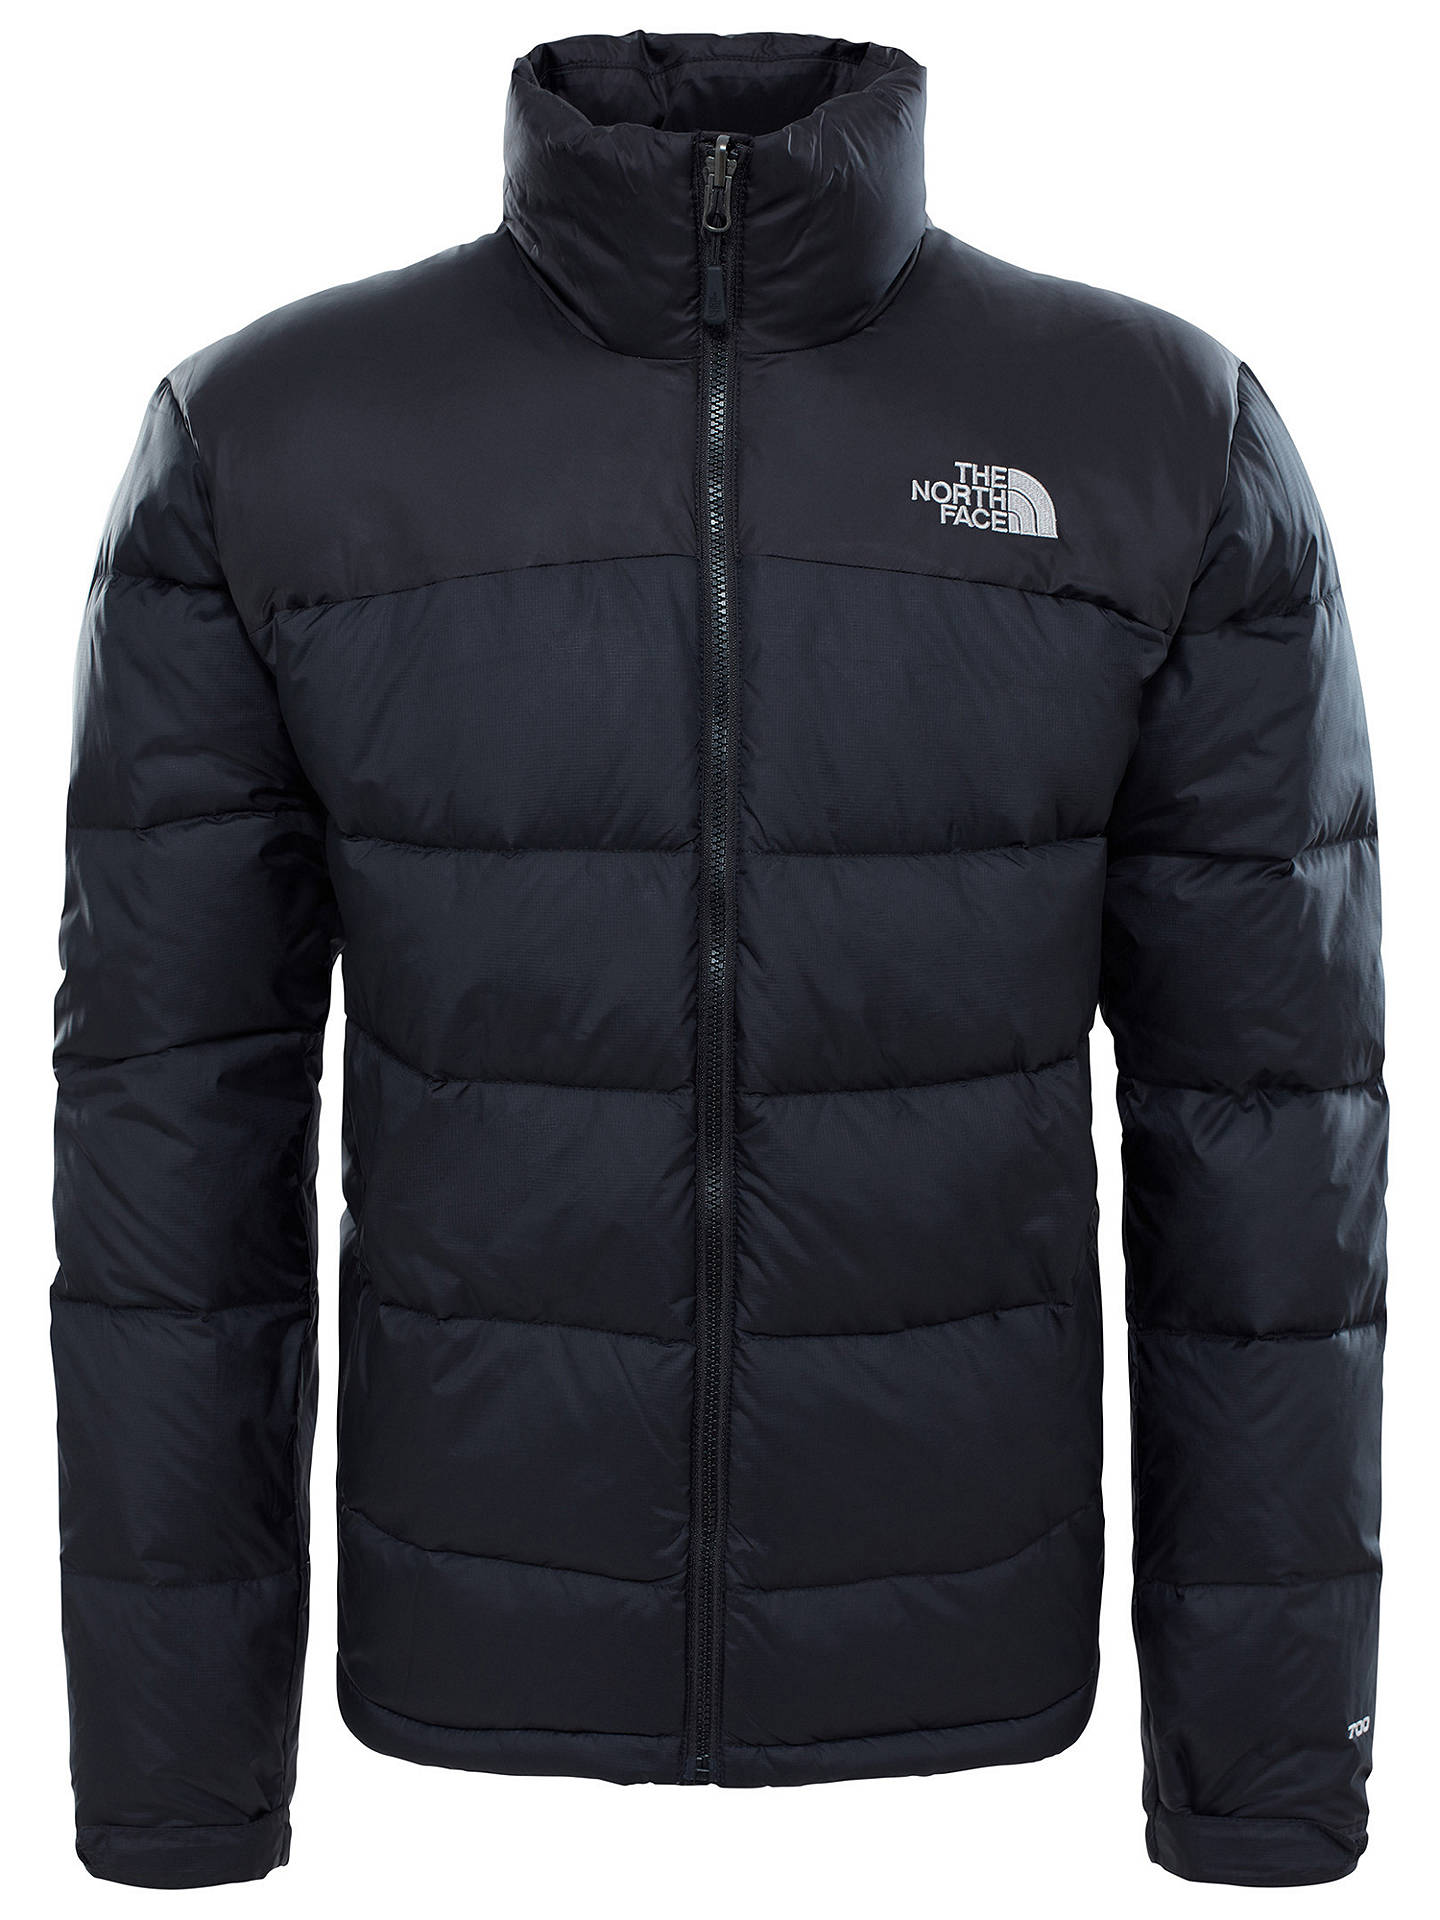 BuyThe North Face Nuptse 2 Down Fill Insulated Men s Jacket d7f174f57